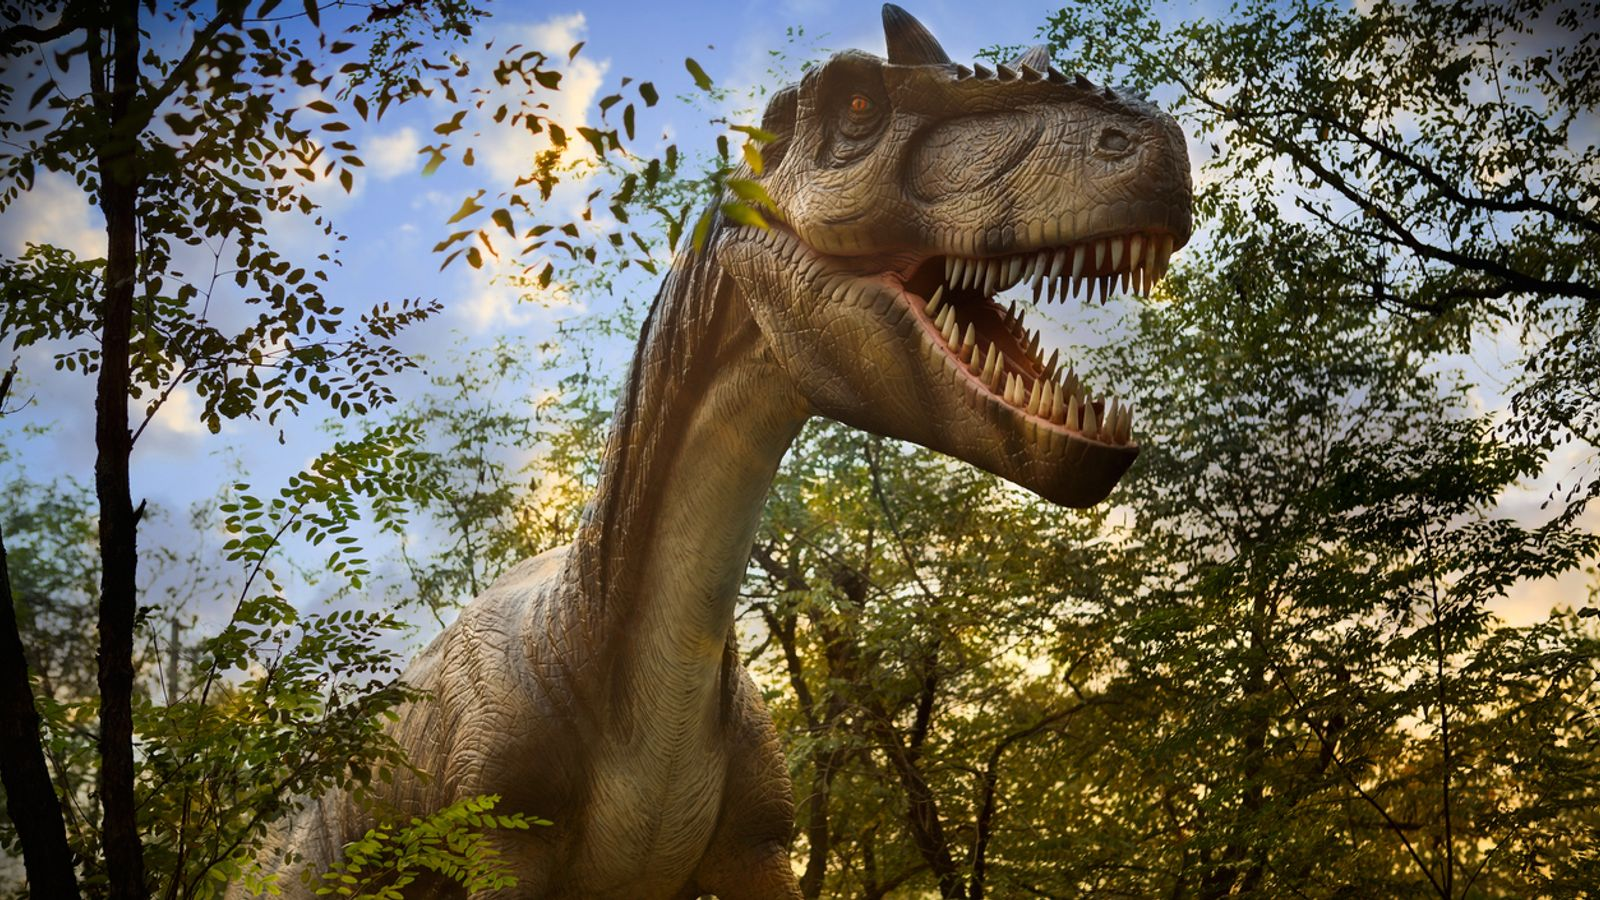 Eggshells suggest dinosaurs were actually warm-blooded